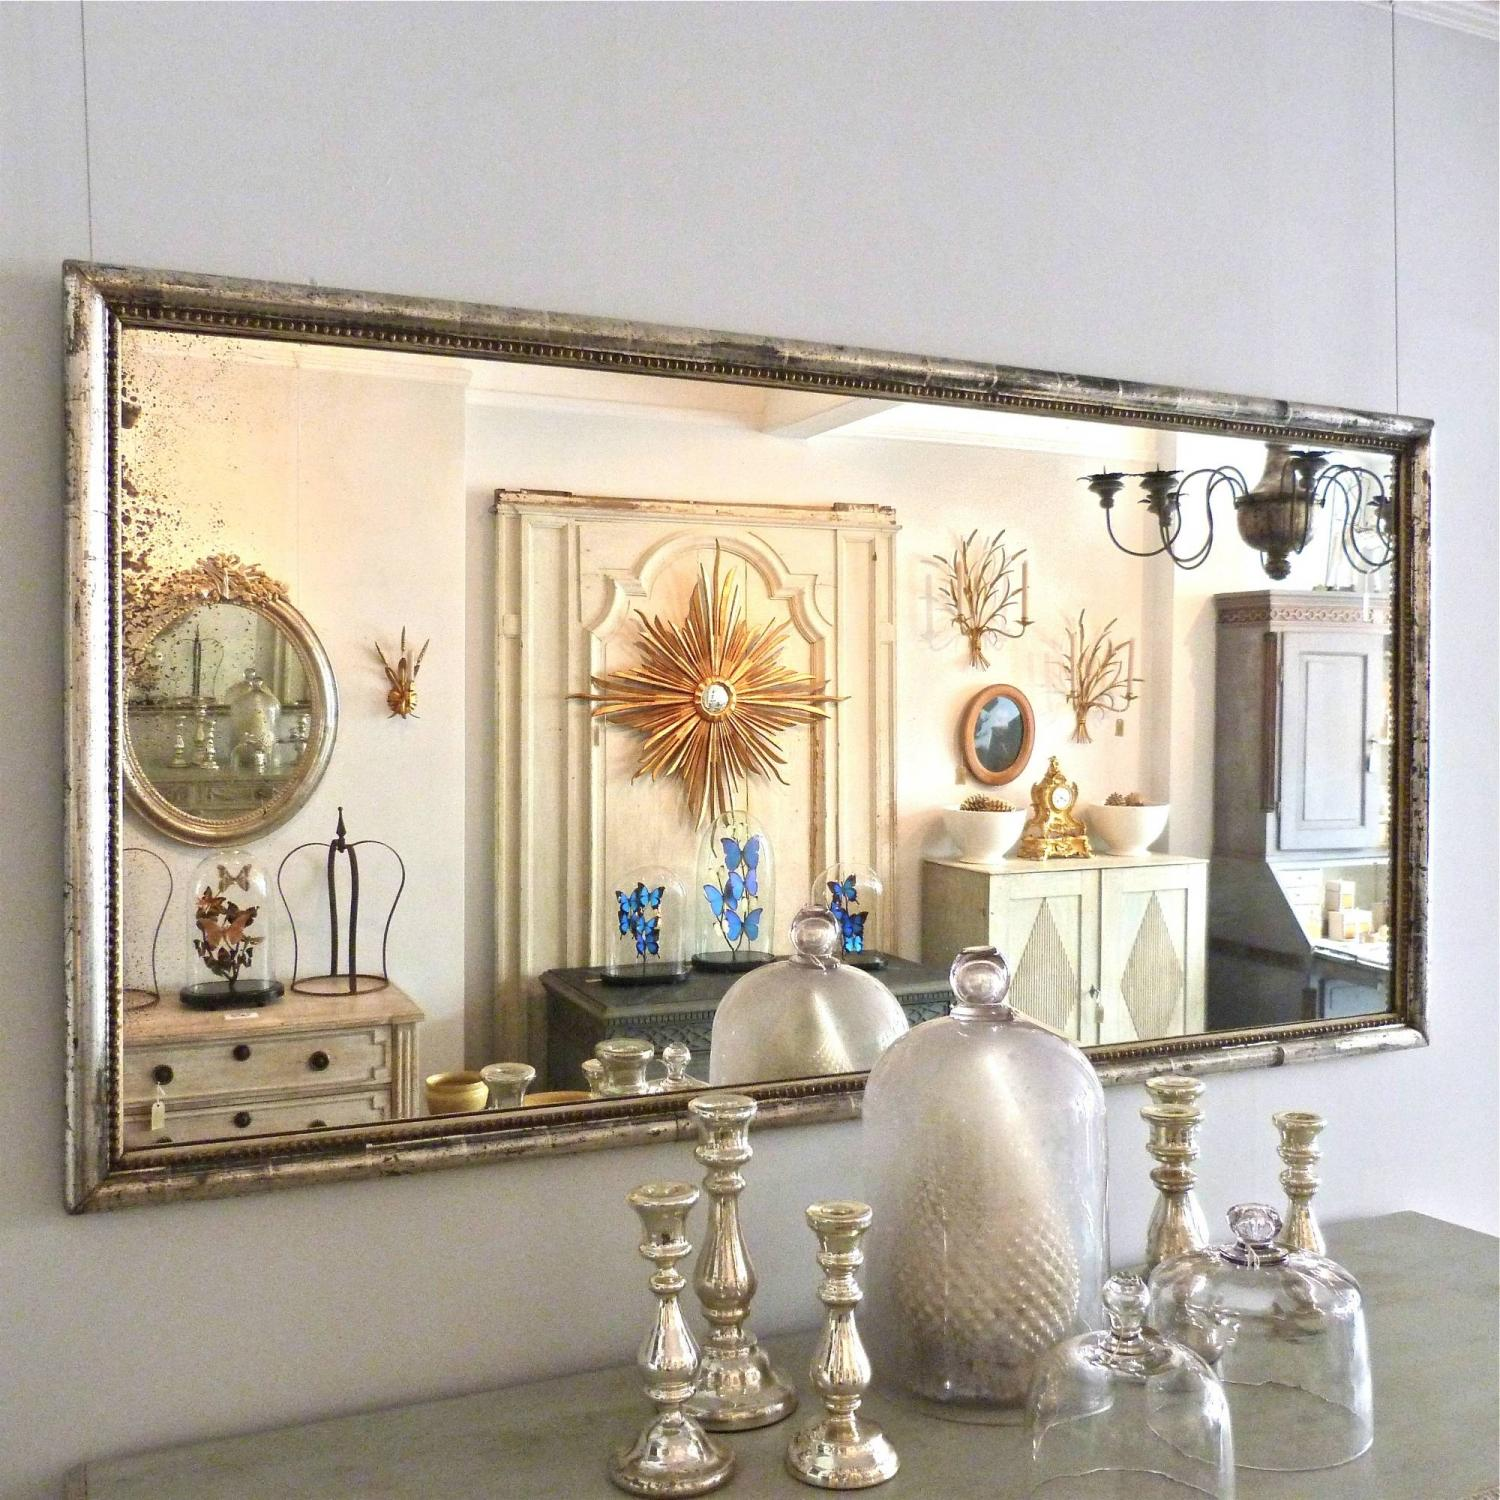 19TH CENTURY FRENCH SILVER BISTRO MIRROR